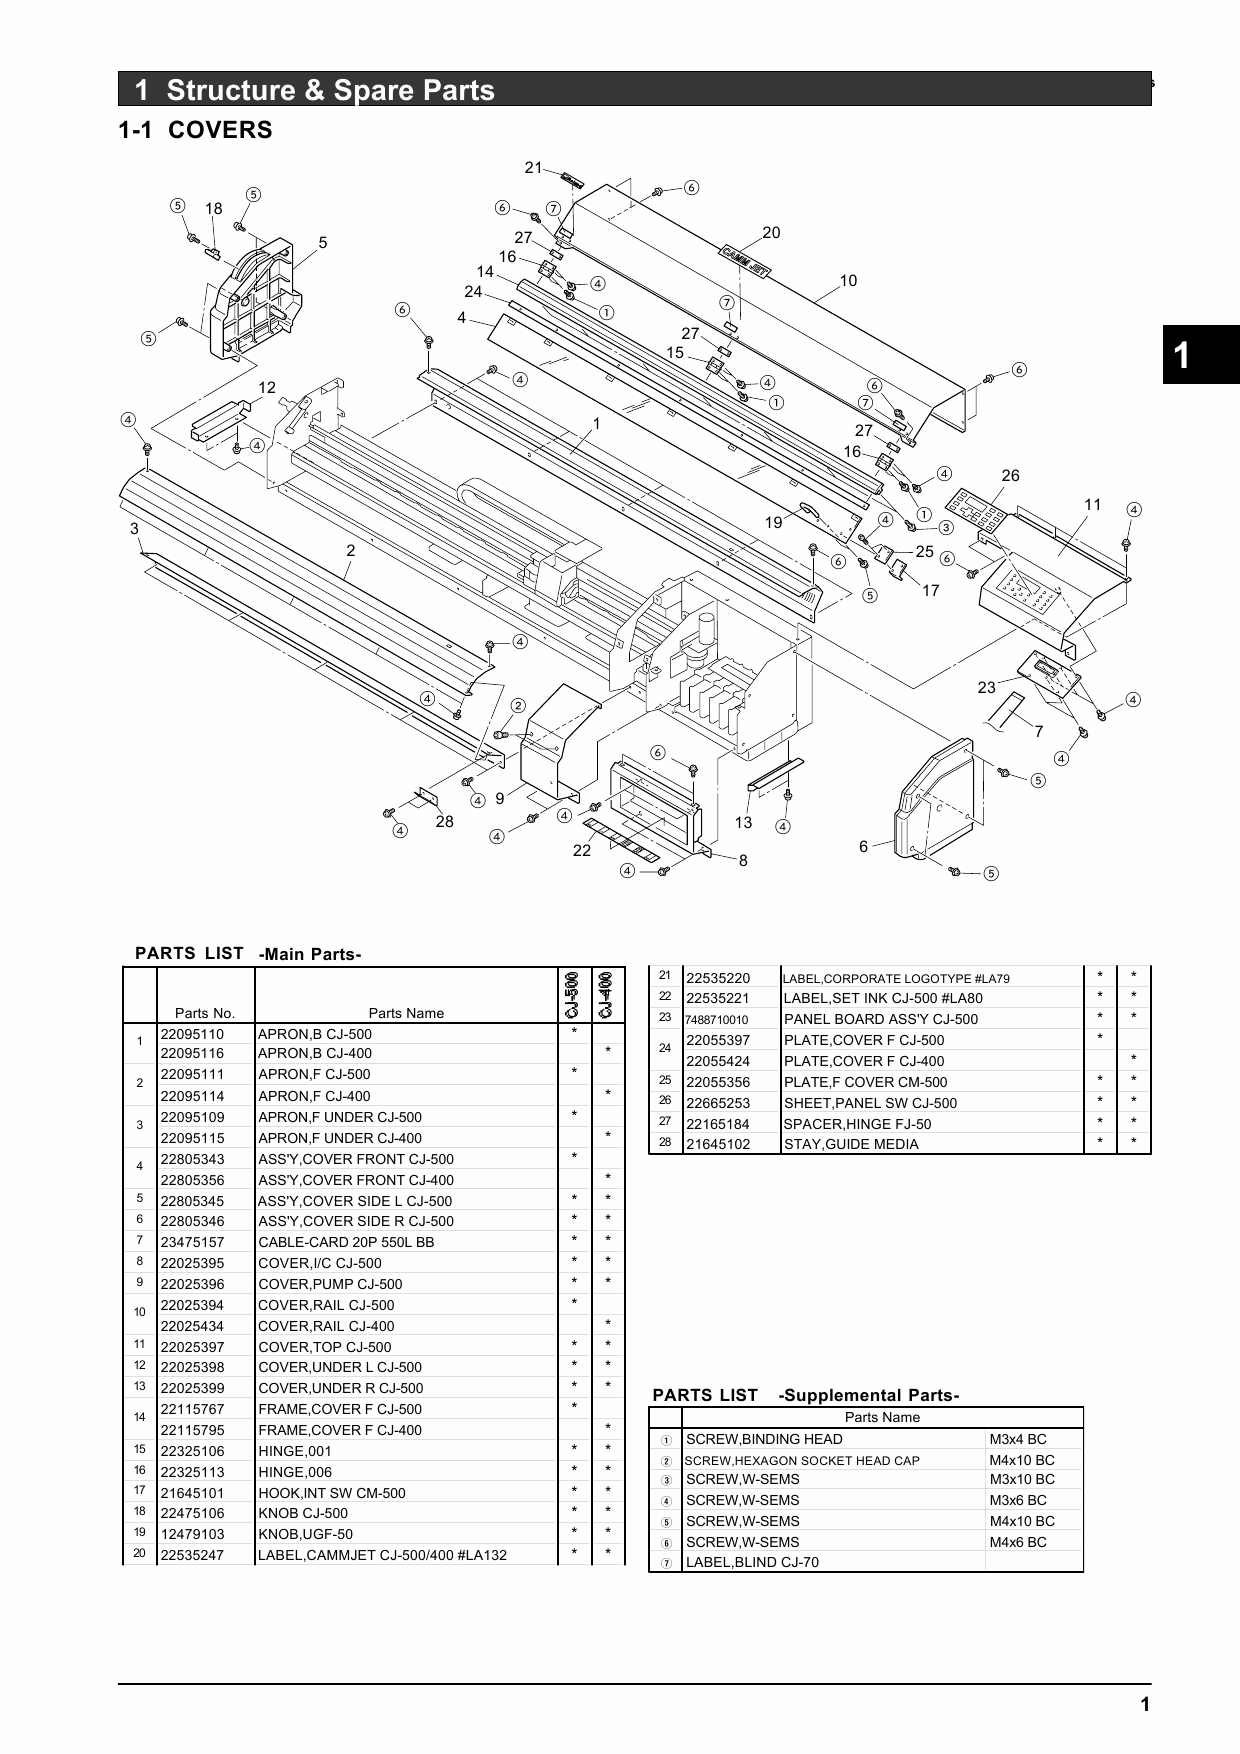 Roland CAMMJET CJ 500 400 Service Notes Manual